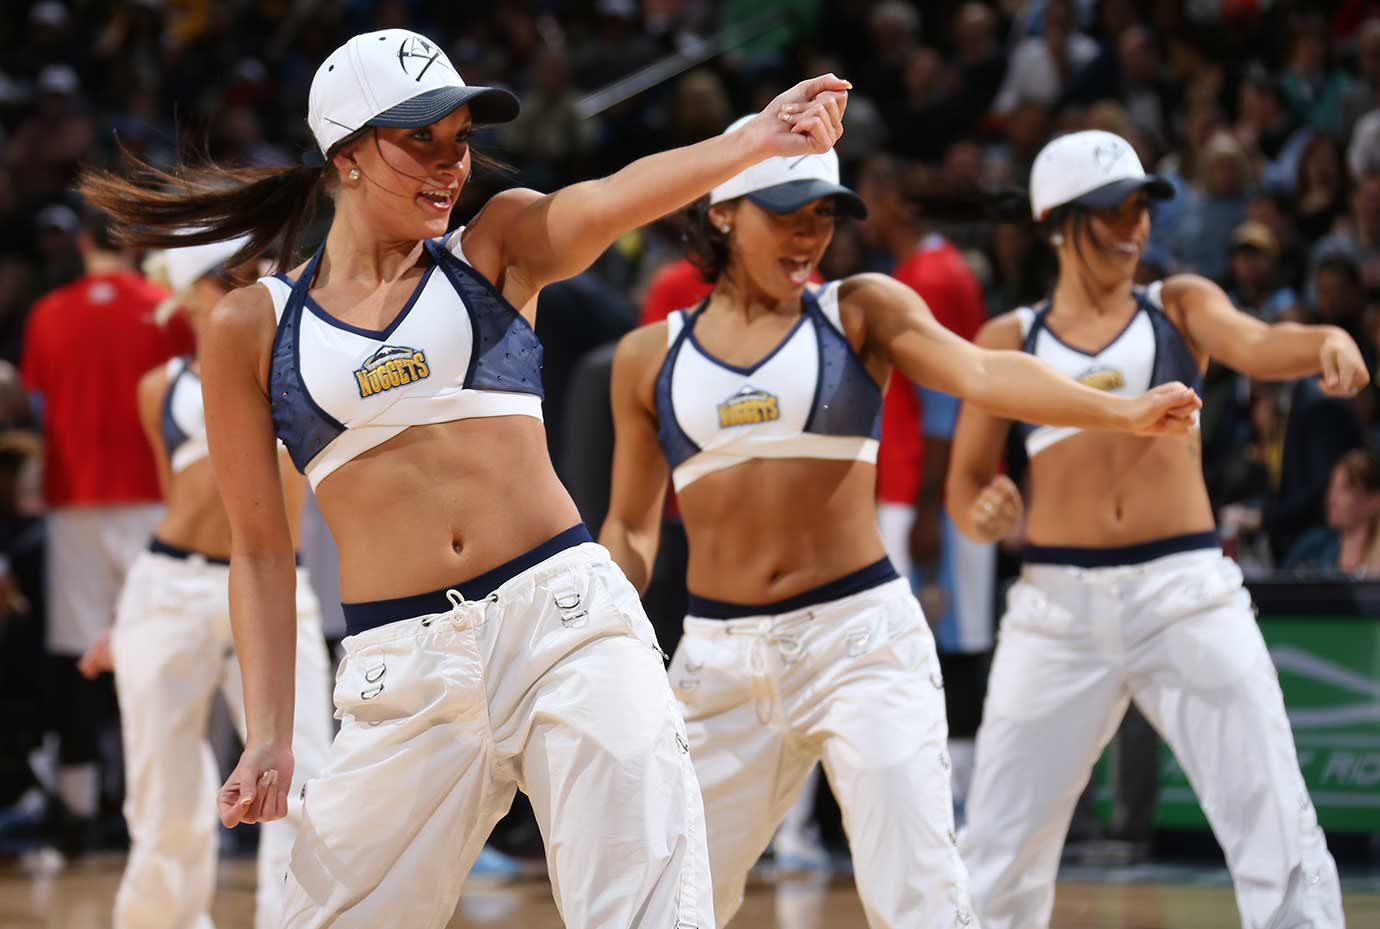 Dancers perform during the game between the Memphis Grizzlies and Denver Nuggets at the Pepsi Center in Denver.